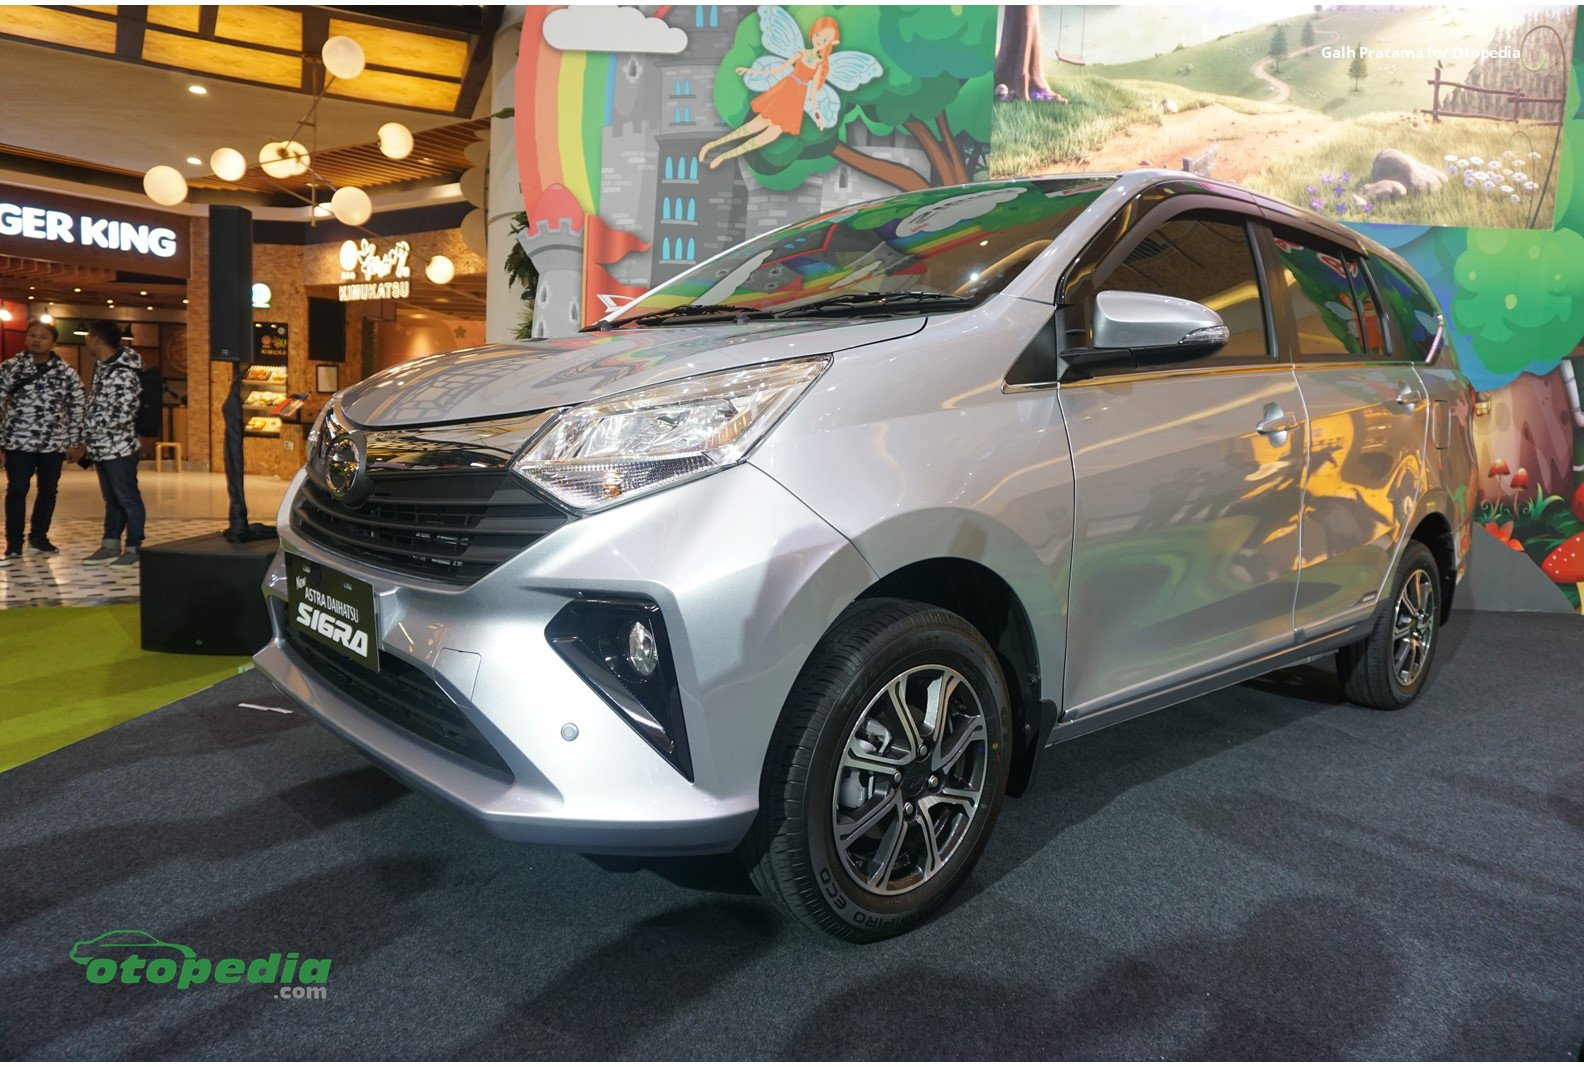 /media/images/Daihatsu-Sigra_0hM2Xcd.original.jpg